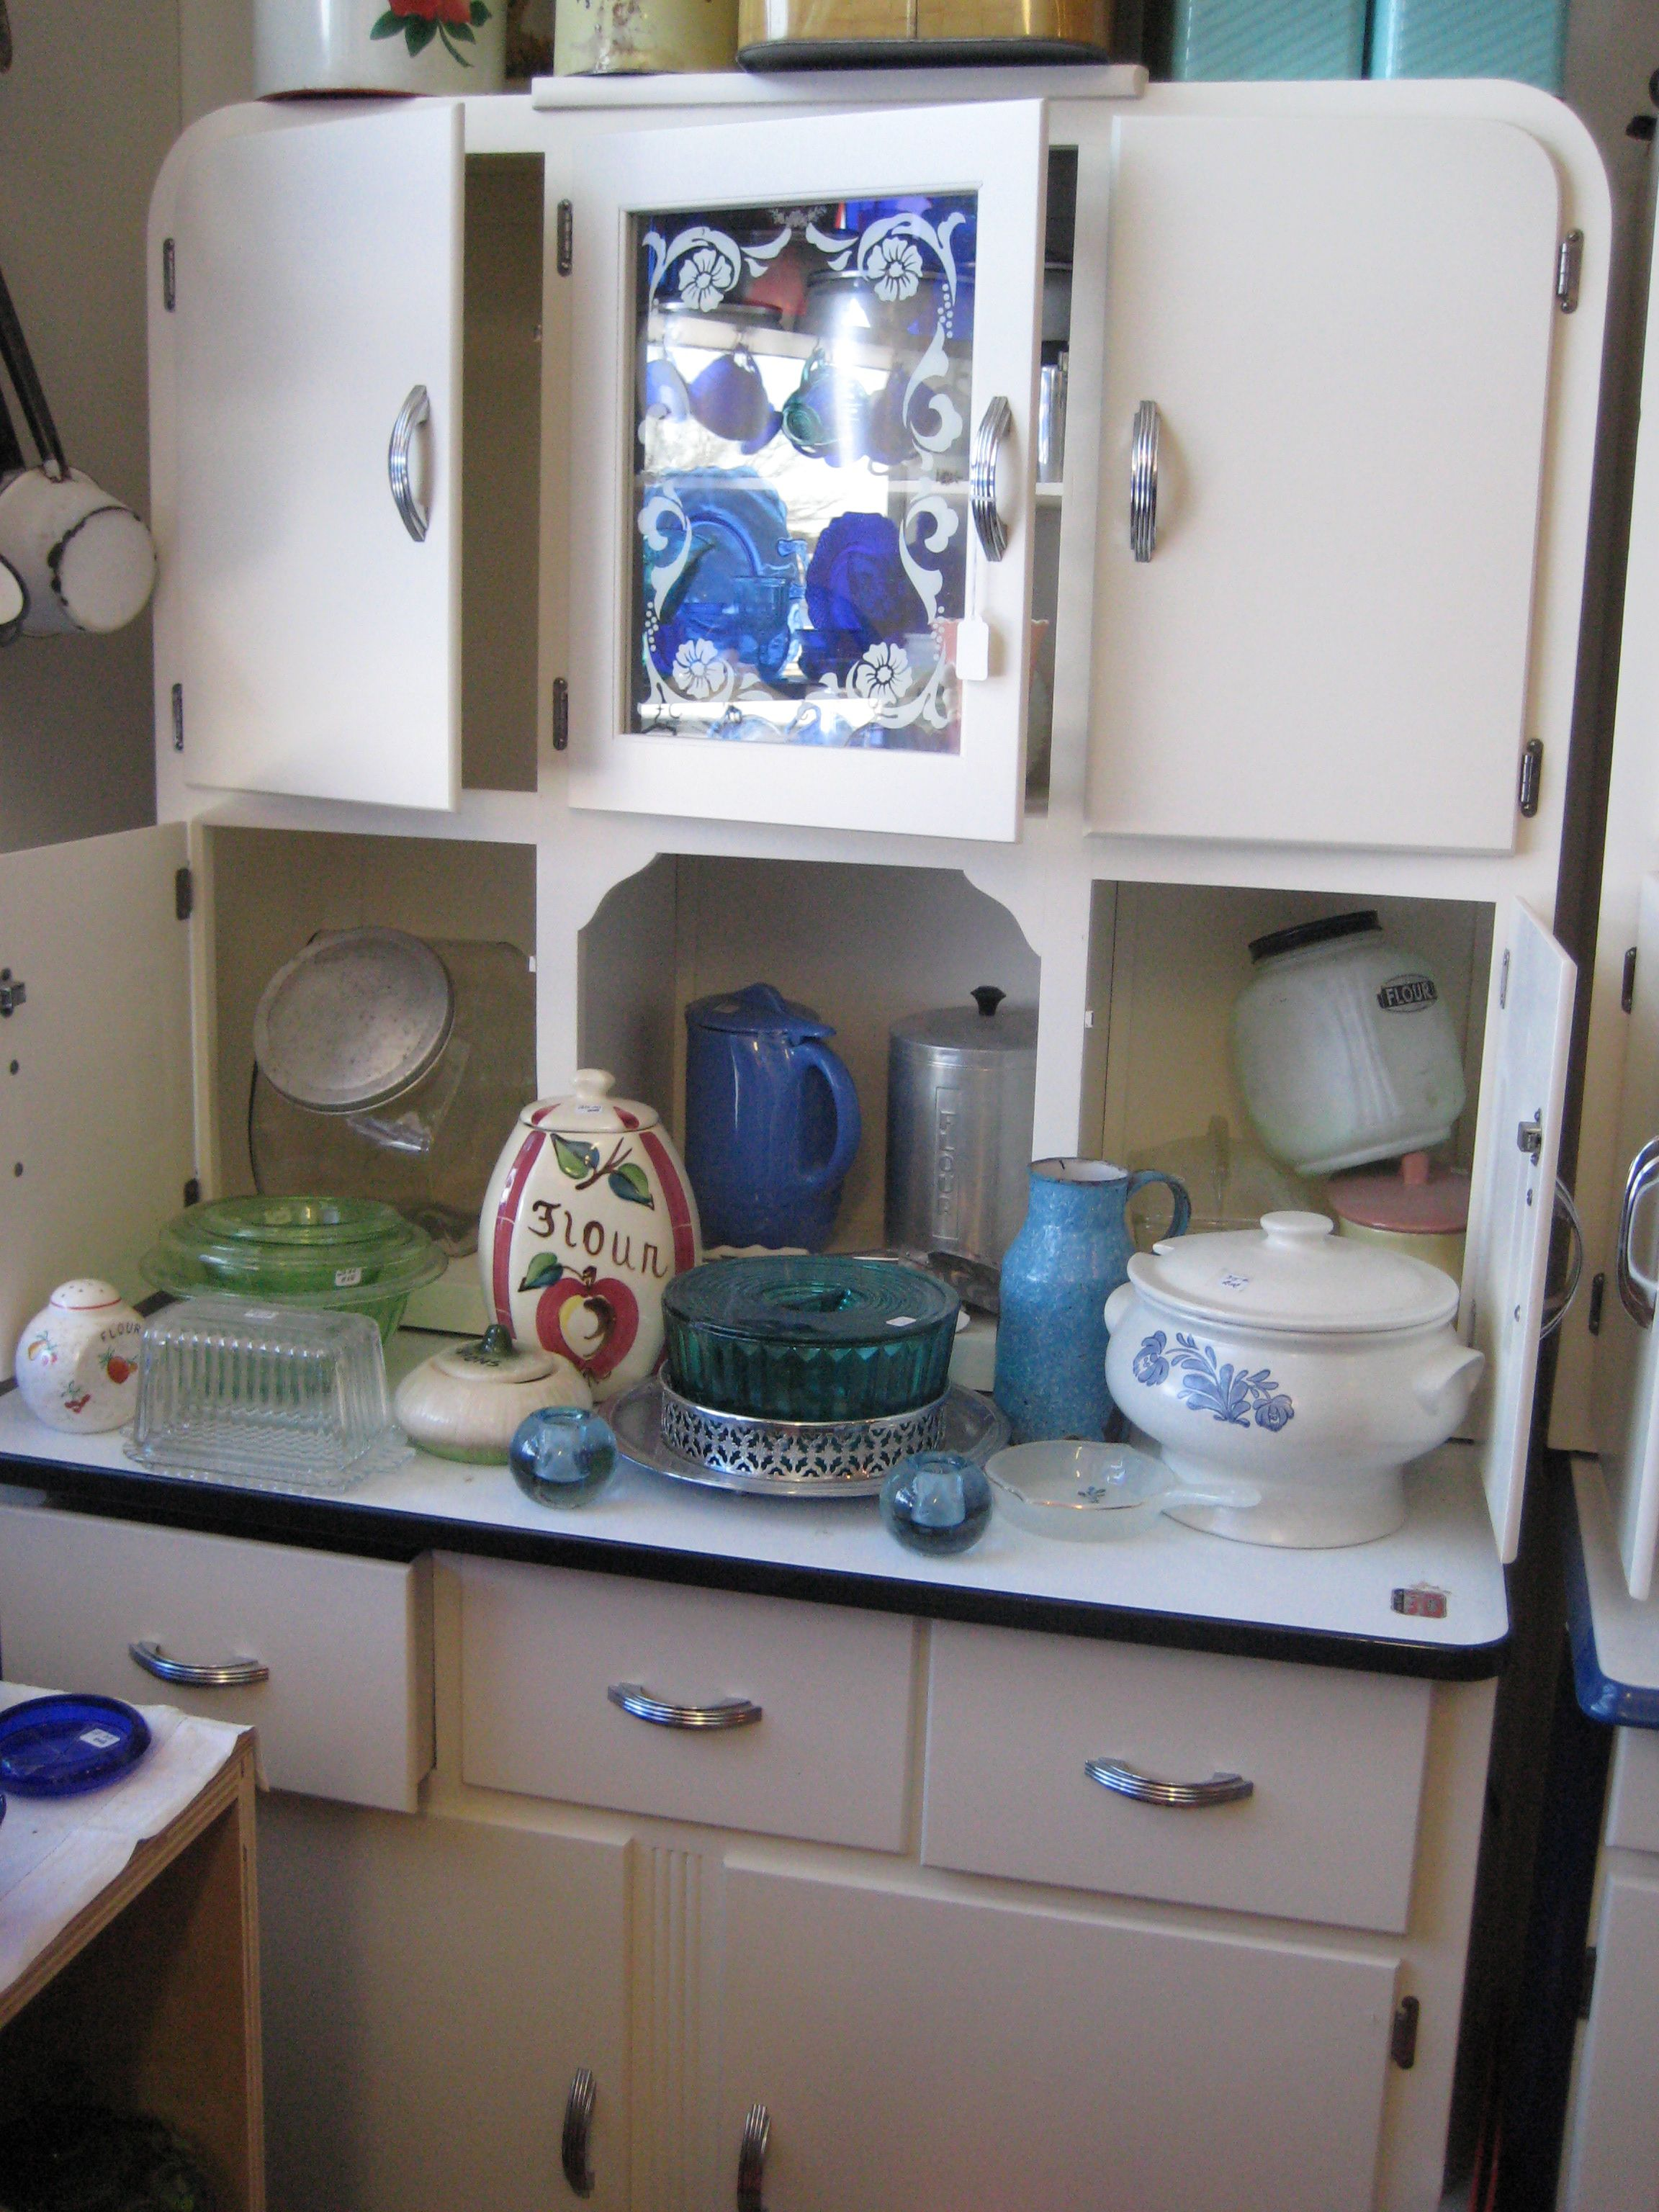 kitchen hutch cabinets This looks very much like the cabinet we had in our kitchen when I was growing up It was there as long as I can remember and was still there when I